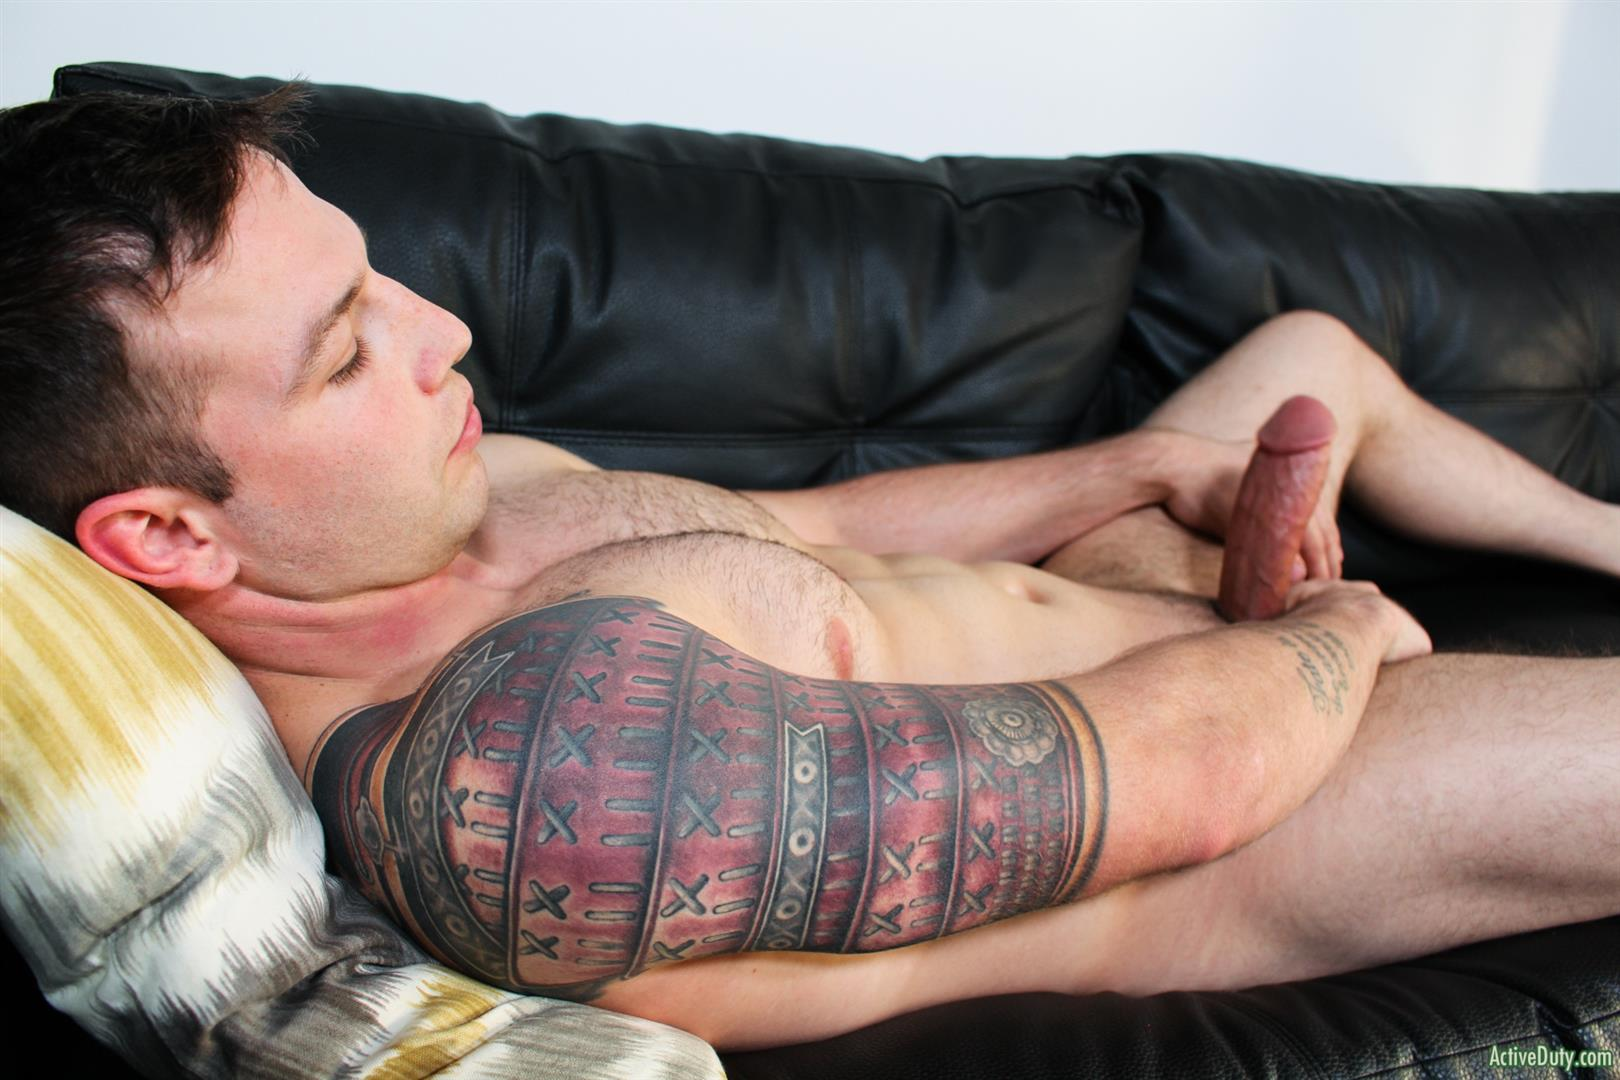 Active-Duty-Tim-Tank-Muscular-Marine-With-A-Thick-Cock-Jerk-Off-14 Muscular Straight Marine Jerking Off His Very Thick Dick